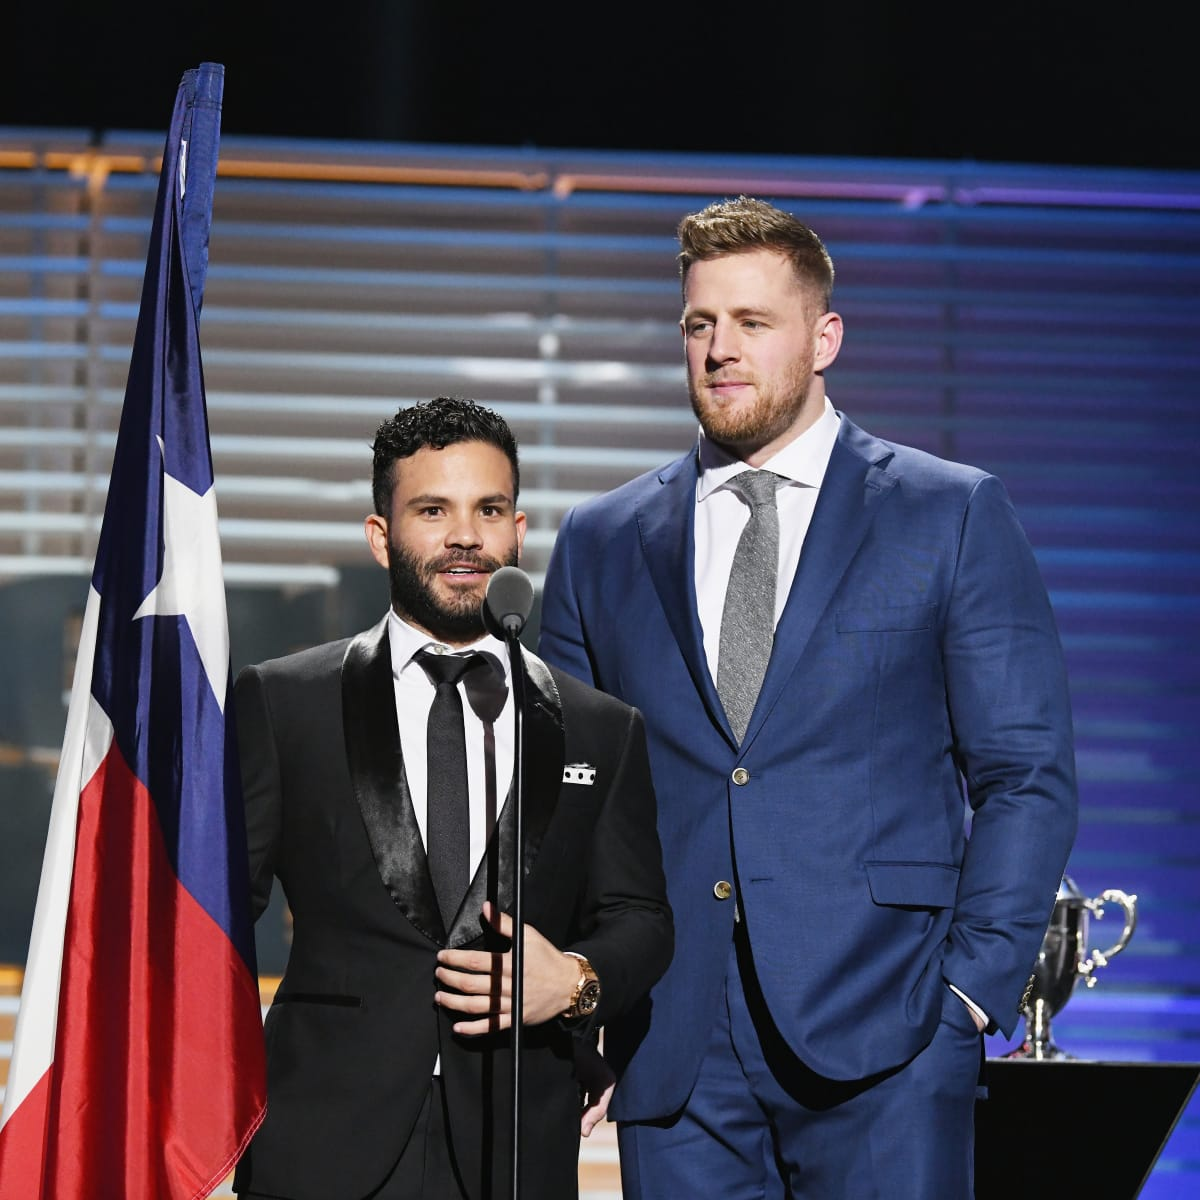 Jose Altuve and JJ Watt repping Texas with Texas flag